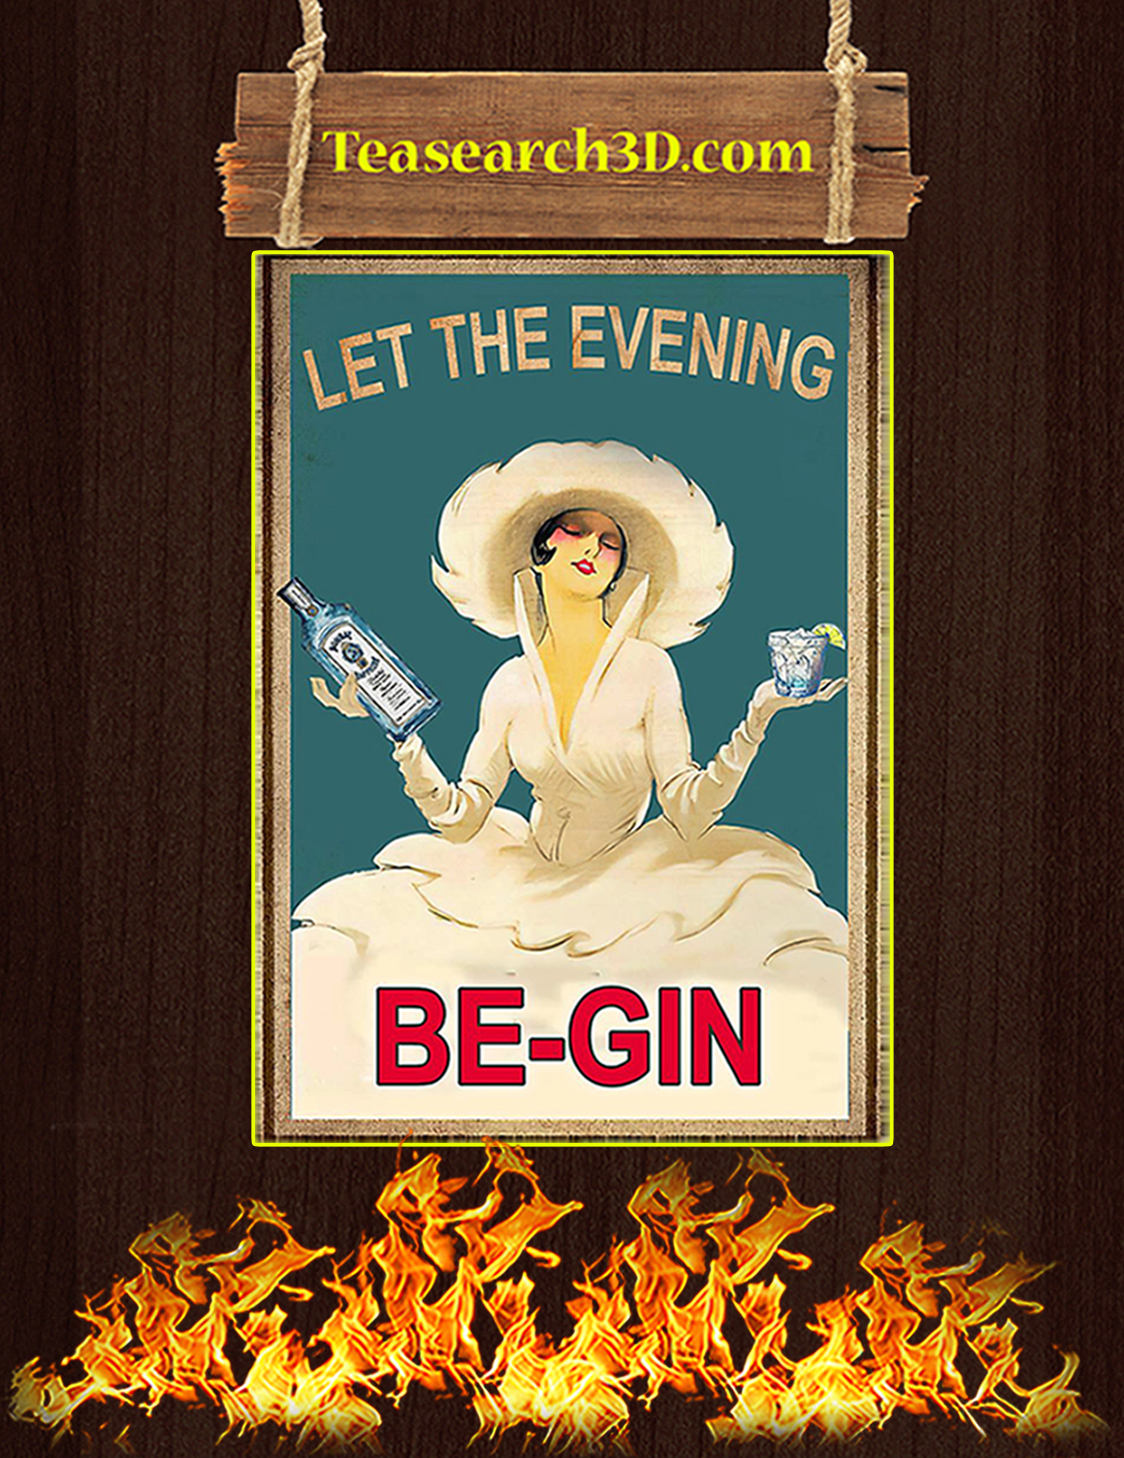 Let the evening be-gin poster A3